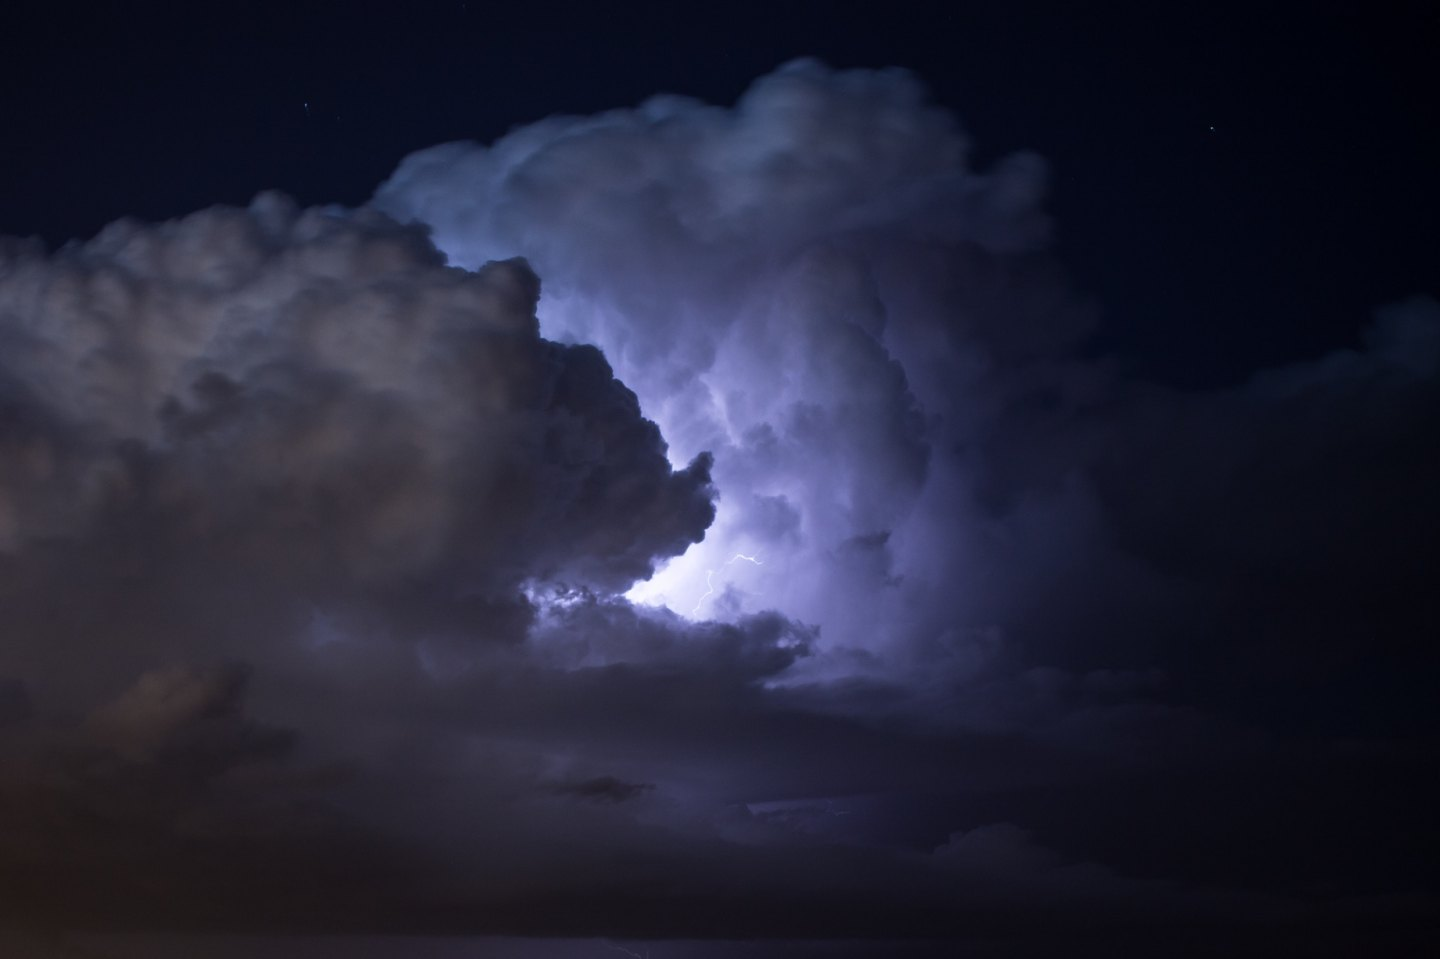 Lightning storm in the clouds